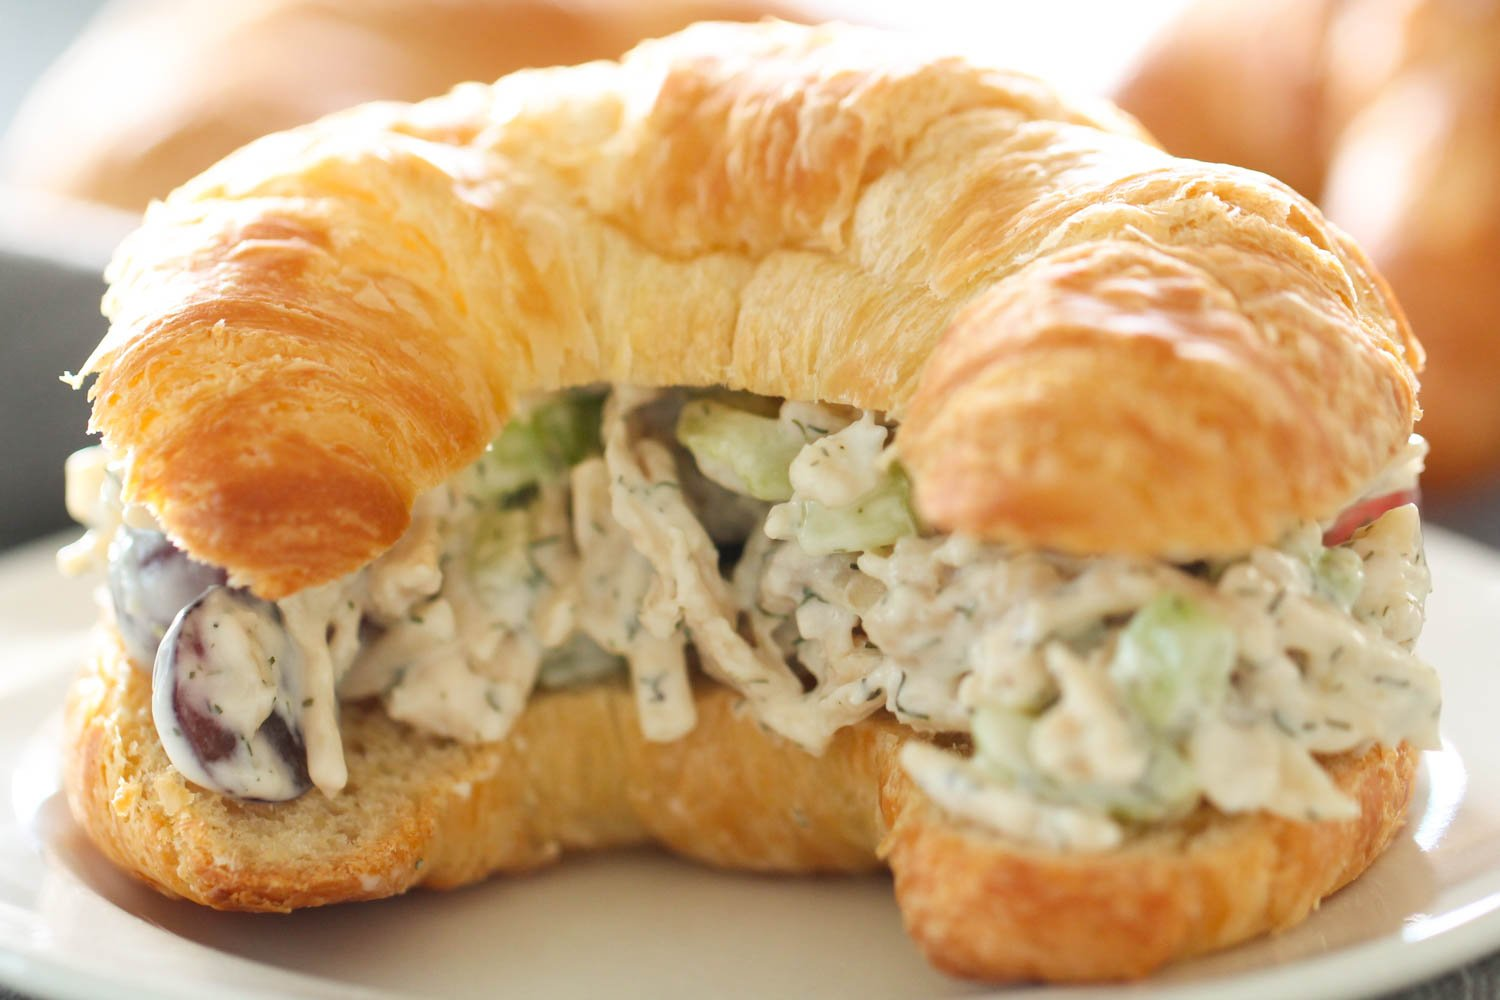 Chicken Salad Sandwich recipe on croissants